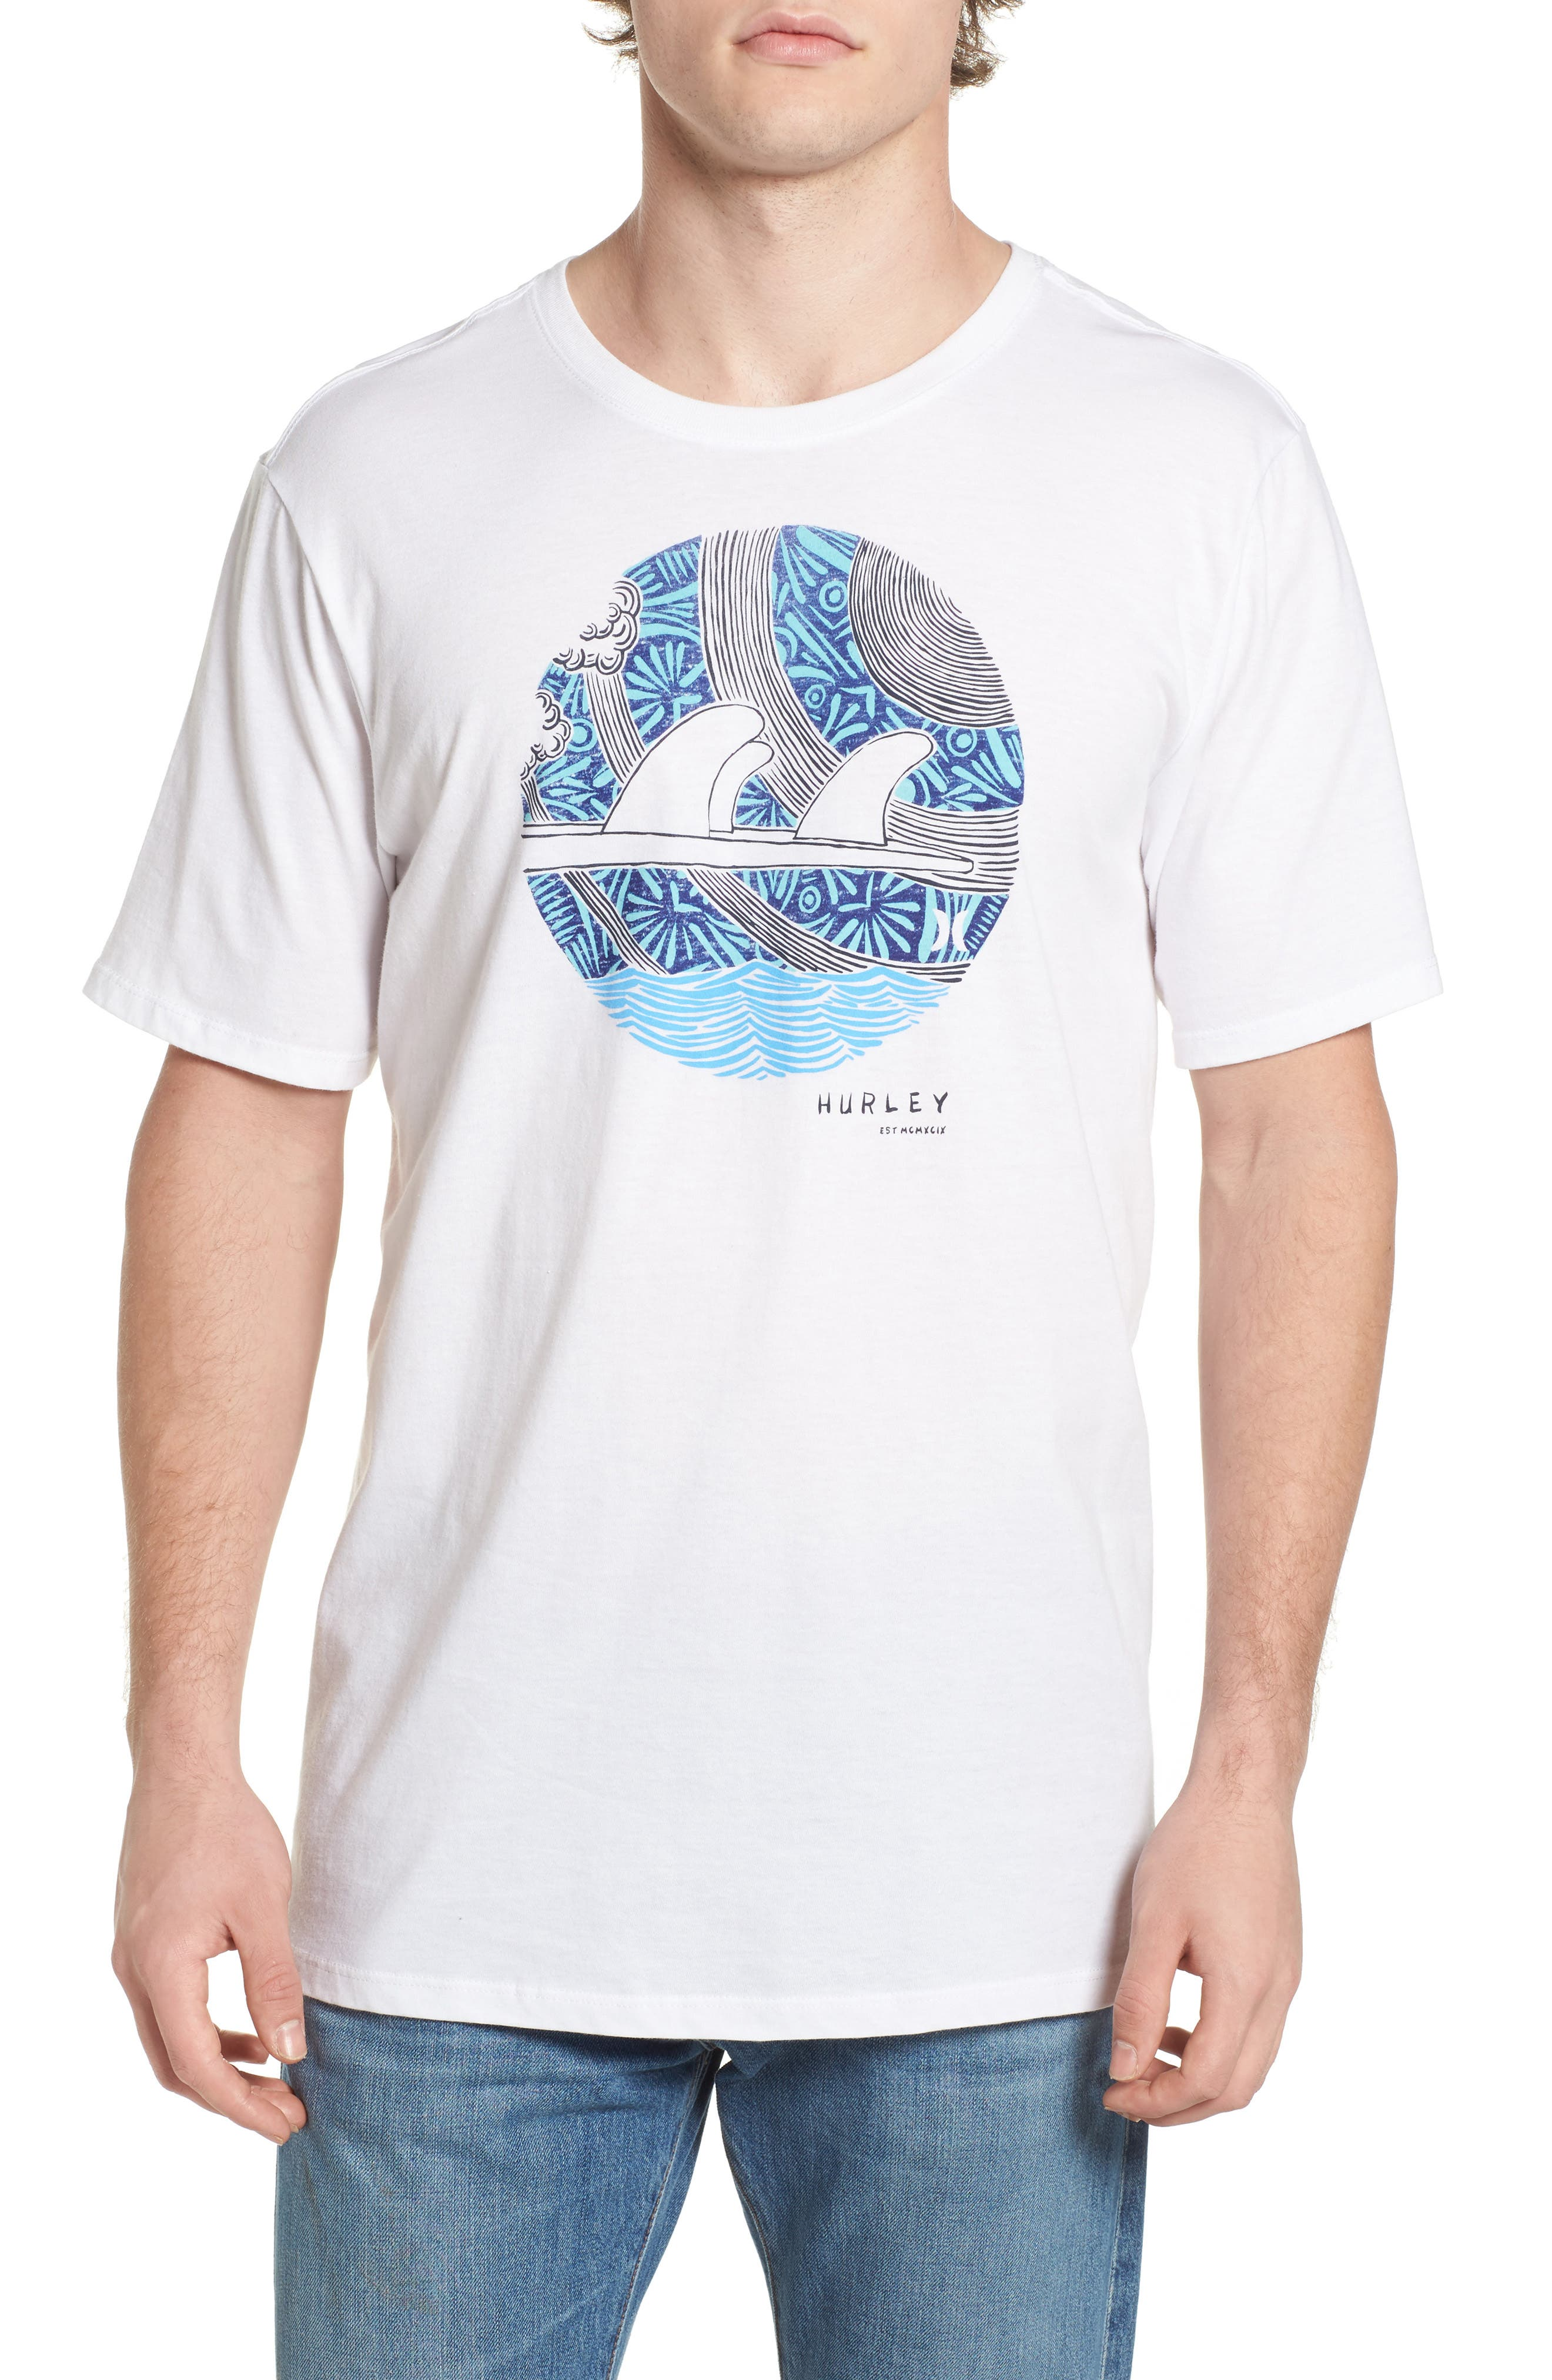 Hurley Surfboard Logo Graphic T-Shirt